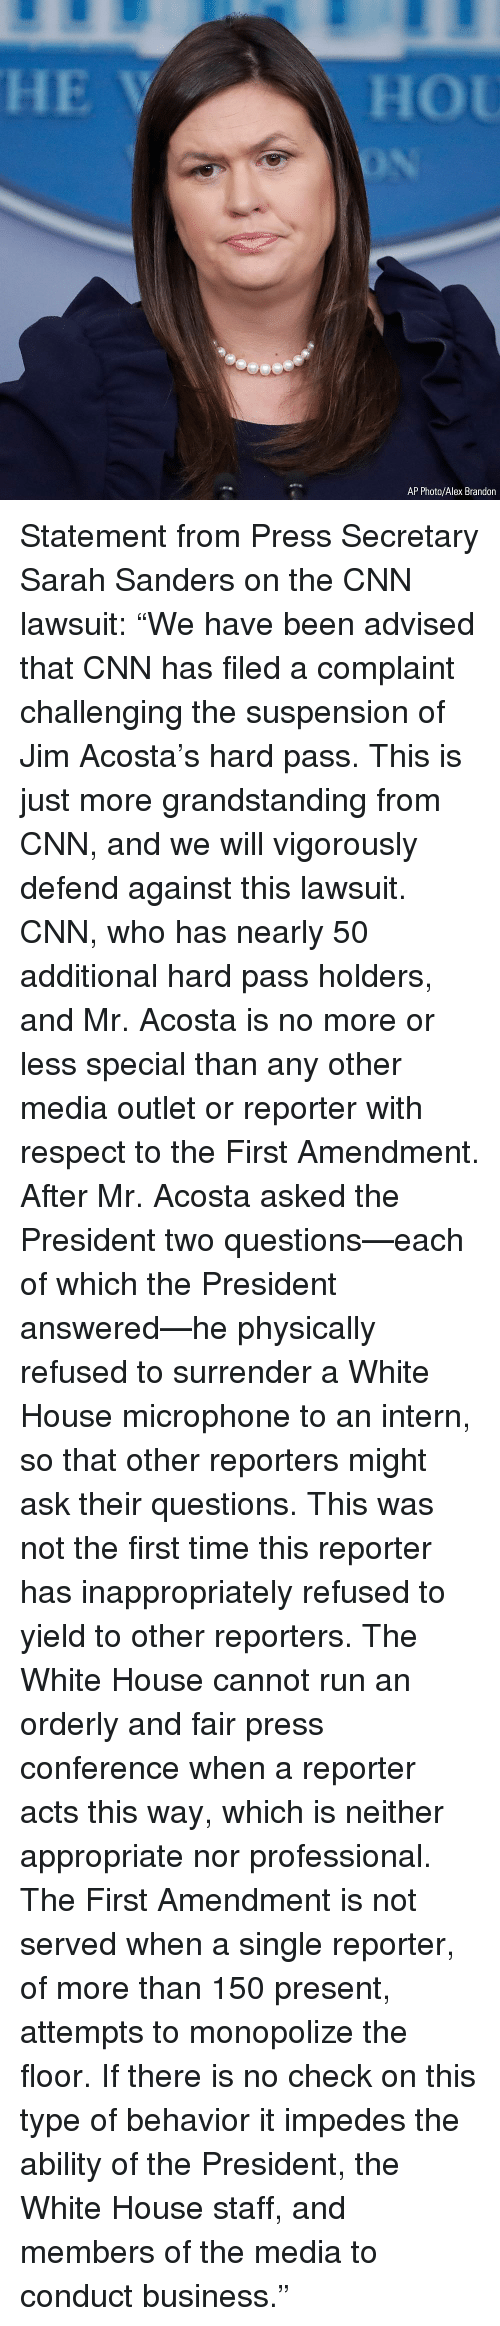 "orderly: AP Photo/Alex Brandon Statement from Press Secretary Sarah Sanders on the CNN lawsuit: ""We have been advised that CNN has filed a complaint challenging the suspension of Jim Acosta's hard pass. This is just more grandstanding from CNN, and we will vigorously defend against this lawsuit. CNN, who has nearly 50 additional hard pass holders, and Mr. Acosta is no more or less special than any other media outlet or reporter with respect to the First Amendment. After Mr. Acosta asked the President two questions—each of which the President answered—he physically refused to surrender a White House microphone to an intern, so that other reporters might ask their questions. This was not the first time this reporter has inappropriately refused to yield to other reporters. The White House cannot run an orderly and fair press conference when a reporter acts this way, which is neither appropriate nor professional. The First Amendment is not served when a single reporter, of more than 150 present, attempts to monopolize the floor. If there is no check on this type of behavior it impedes the ability of the President, the White House staff, and members of the media to conduct business."""